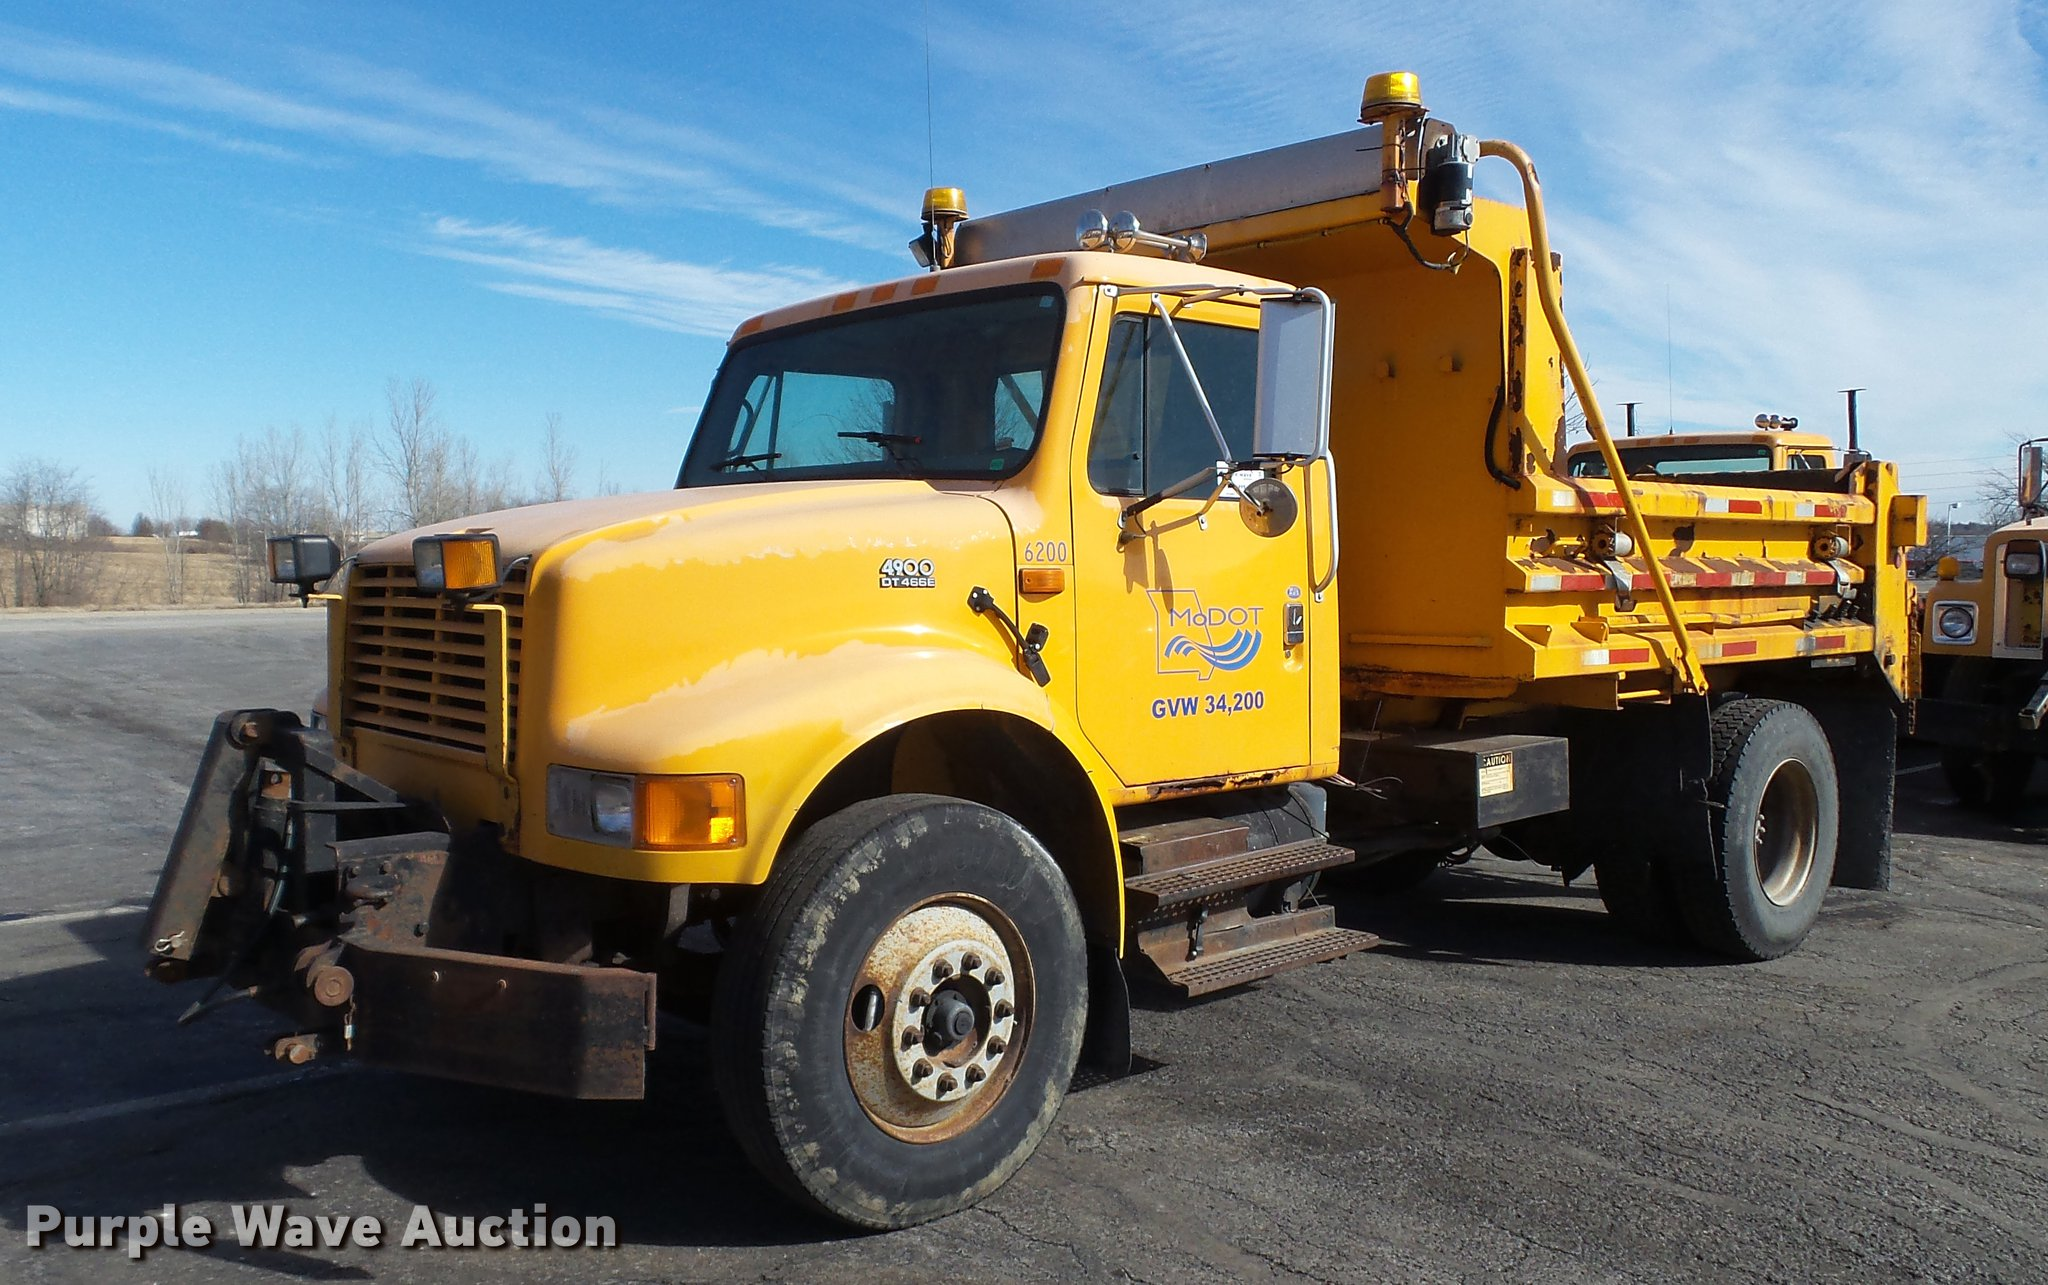 2000 International 4900 dump truck | Item DC5634 | SOLD! Mar